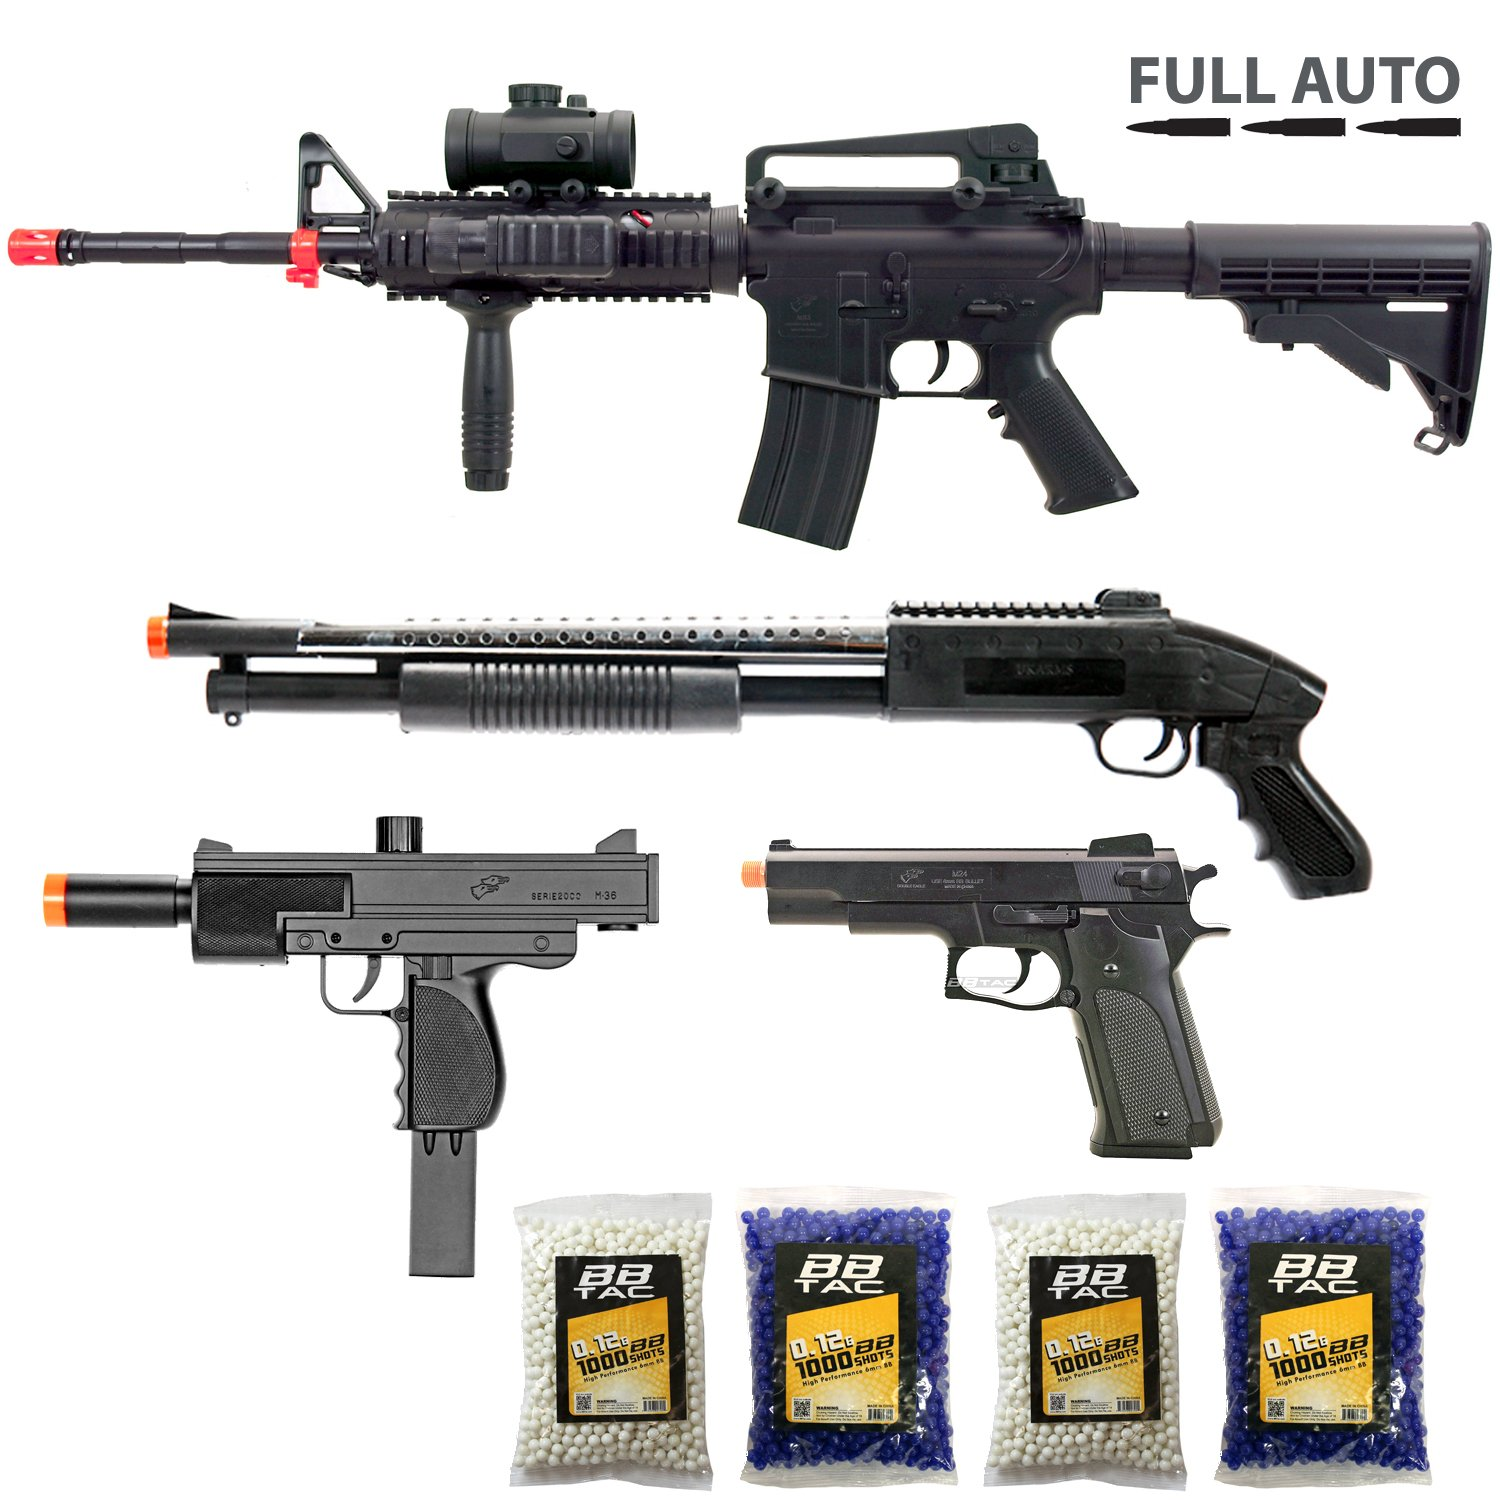 BBTac Airsoft Gun Package - Police Response Team Collection of 4 Airsoft Guns - Full Auto AEG Electric Rifle, Shotgun, SMG and Pistol, 4000 BB Pellets, Great for Starter Pack Game Play